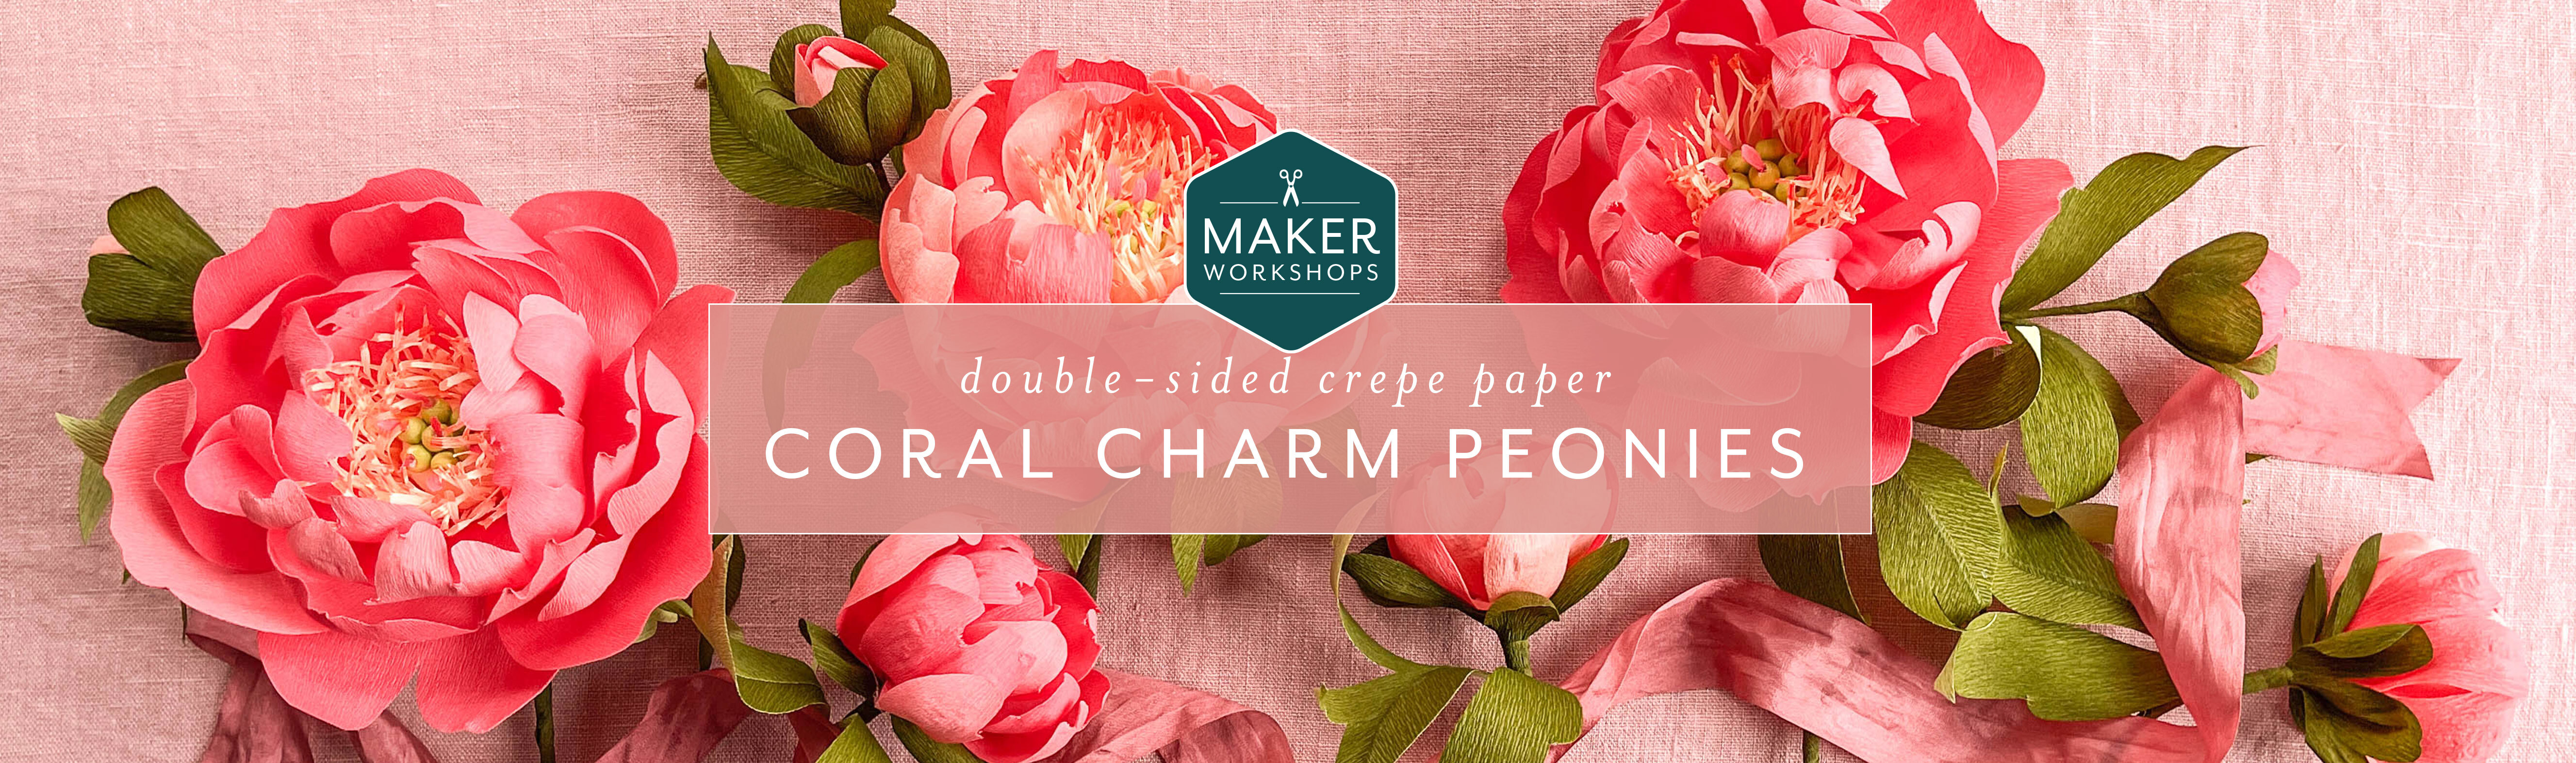 Maker Workshops - Double Sided Crepe Paper Coral Charm Peonies